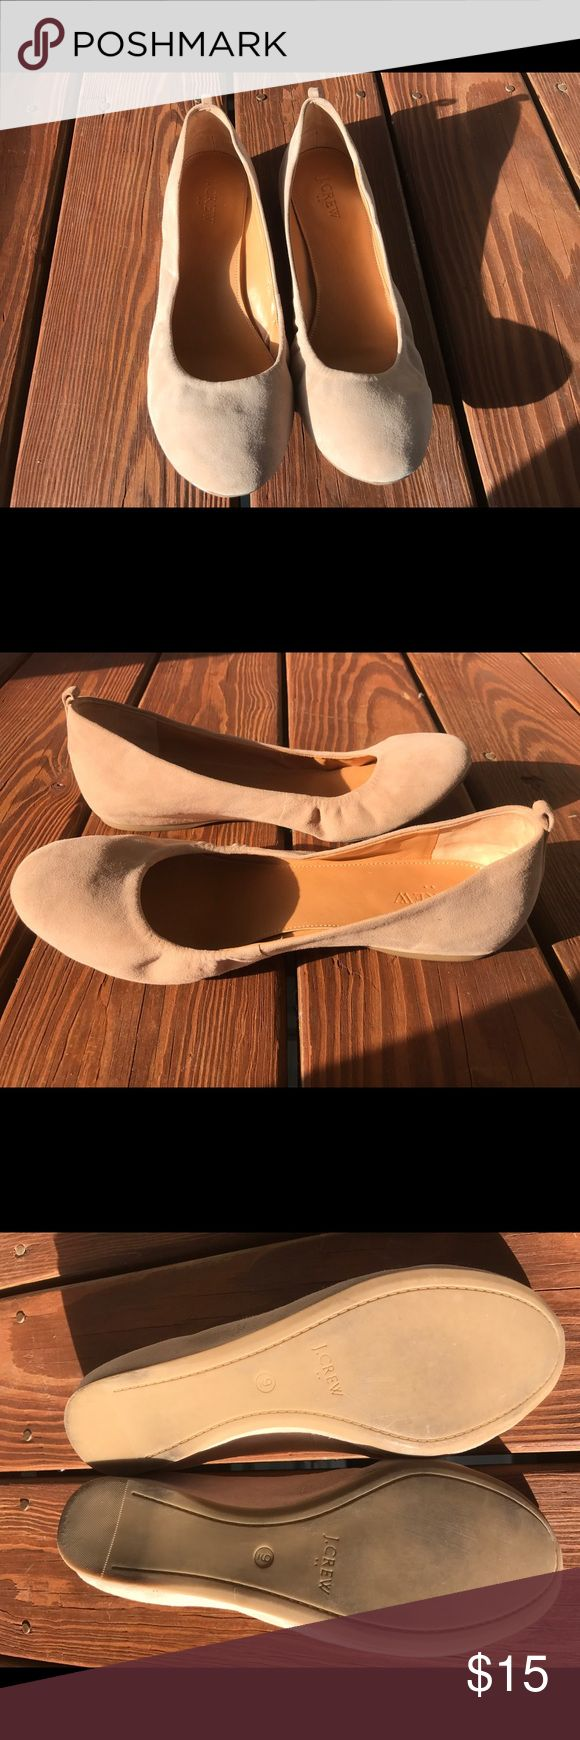 "J Crew ""Anya"" Suede ballet flats, size 9. These are really cute and comfy ballet flats from J Crew, size 9. They are the ""Anya"" style in ""saddle"" color which is a really nice nude/light beige color. They are suede with a leather upper and rubber sole. They are a current style still selling on the J Crew outlet site. They have only been worn a couple of times and are in excellent condition. J Crew  Shoes Flats & Loafers"